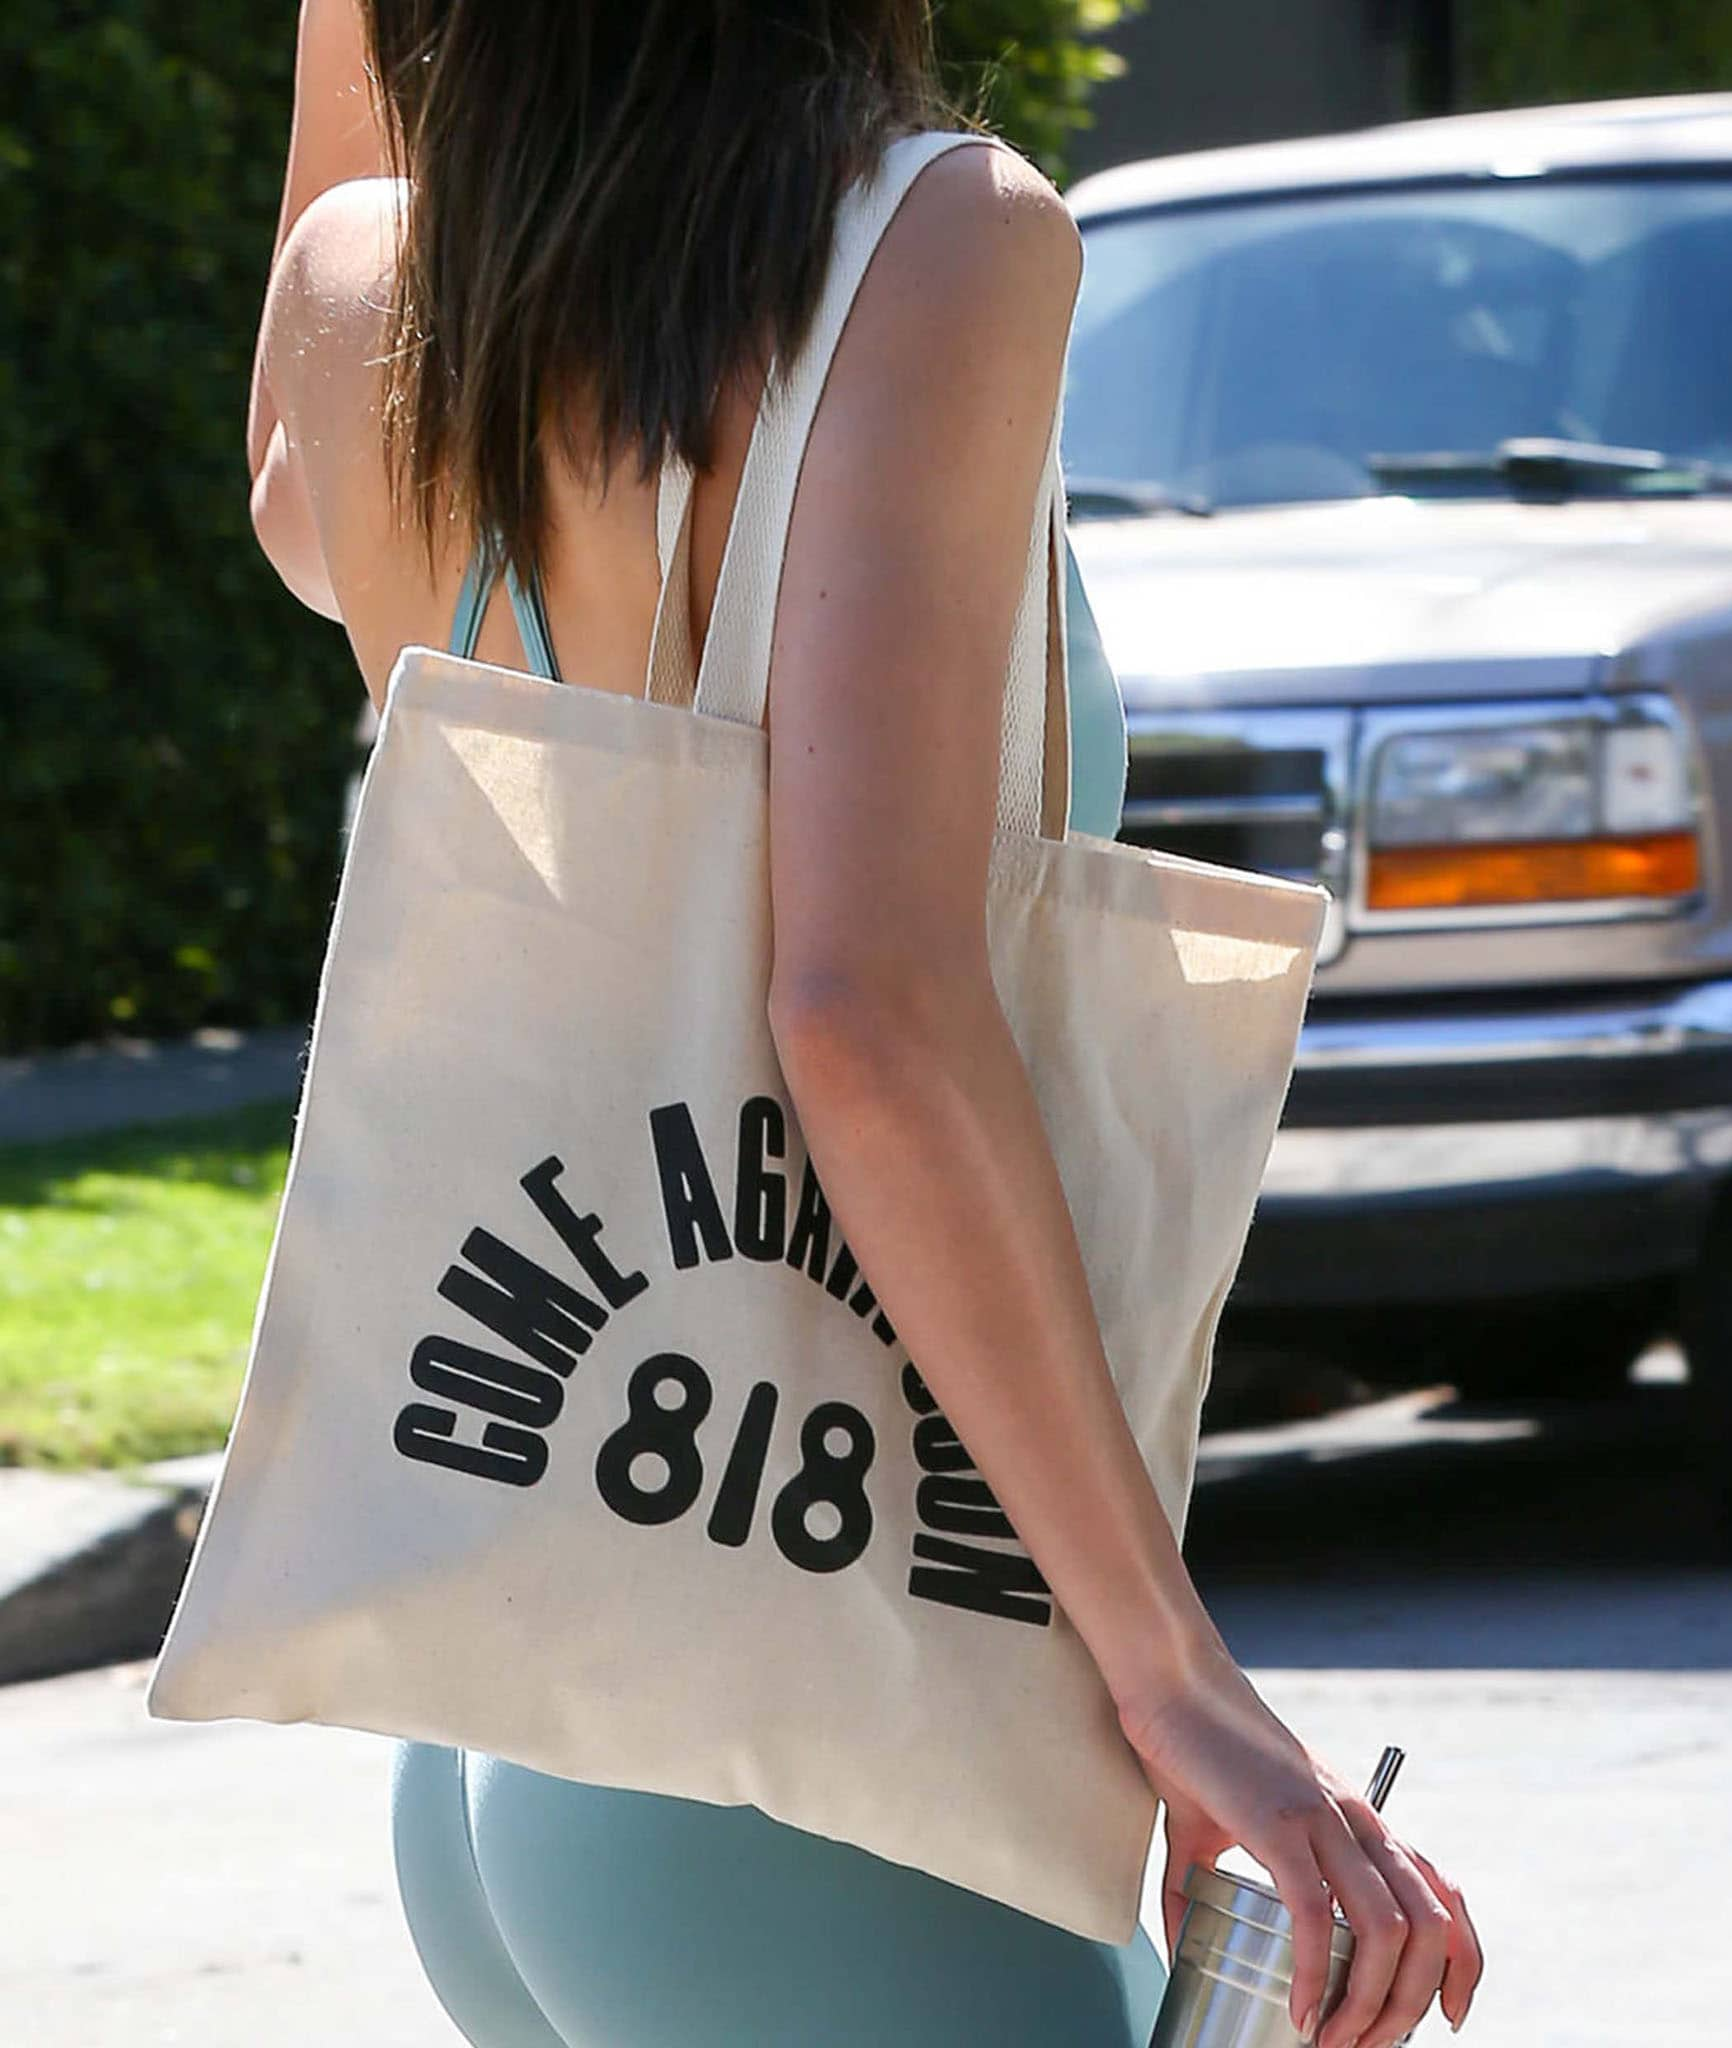 """Kendall Jenner carries a canvas tote bag featuring """"Come Again Soon 818"""" for her tequila brand"""